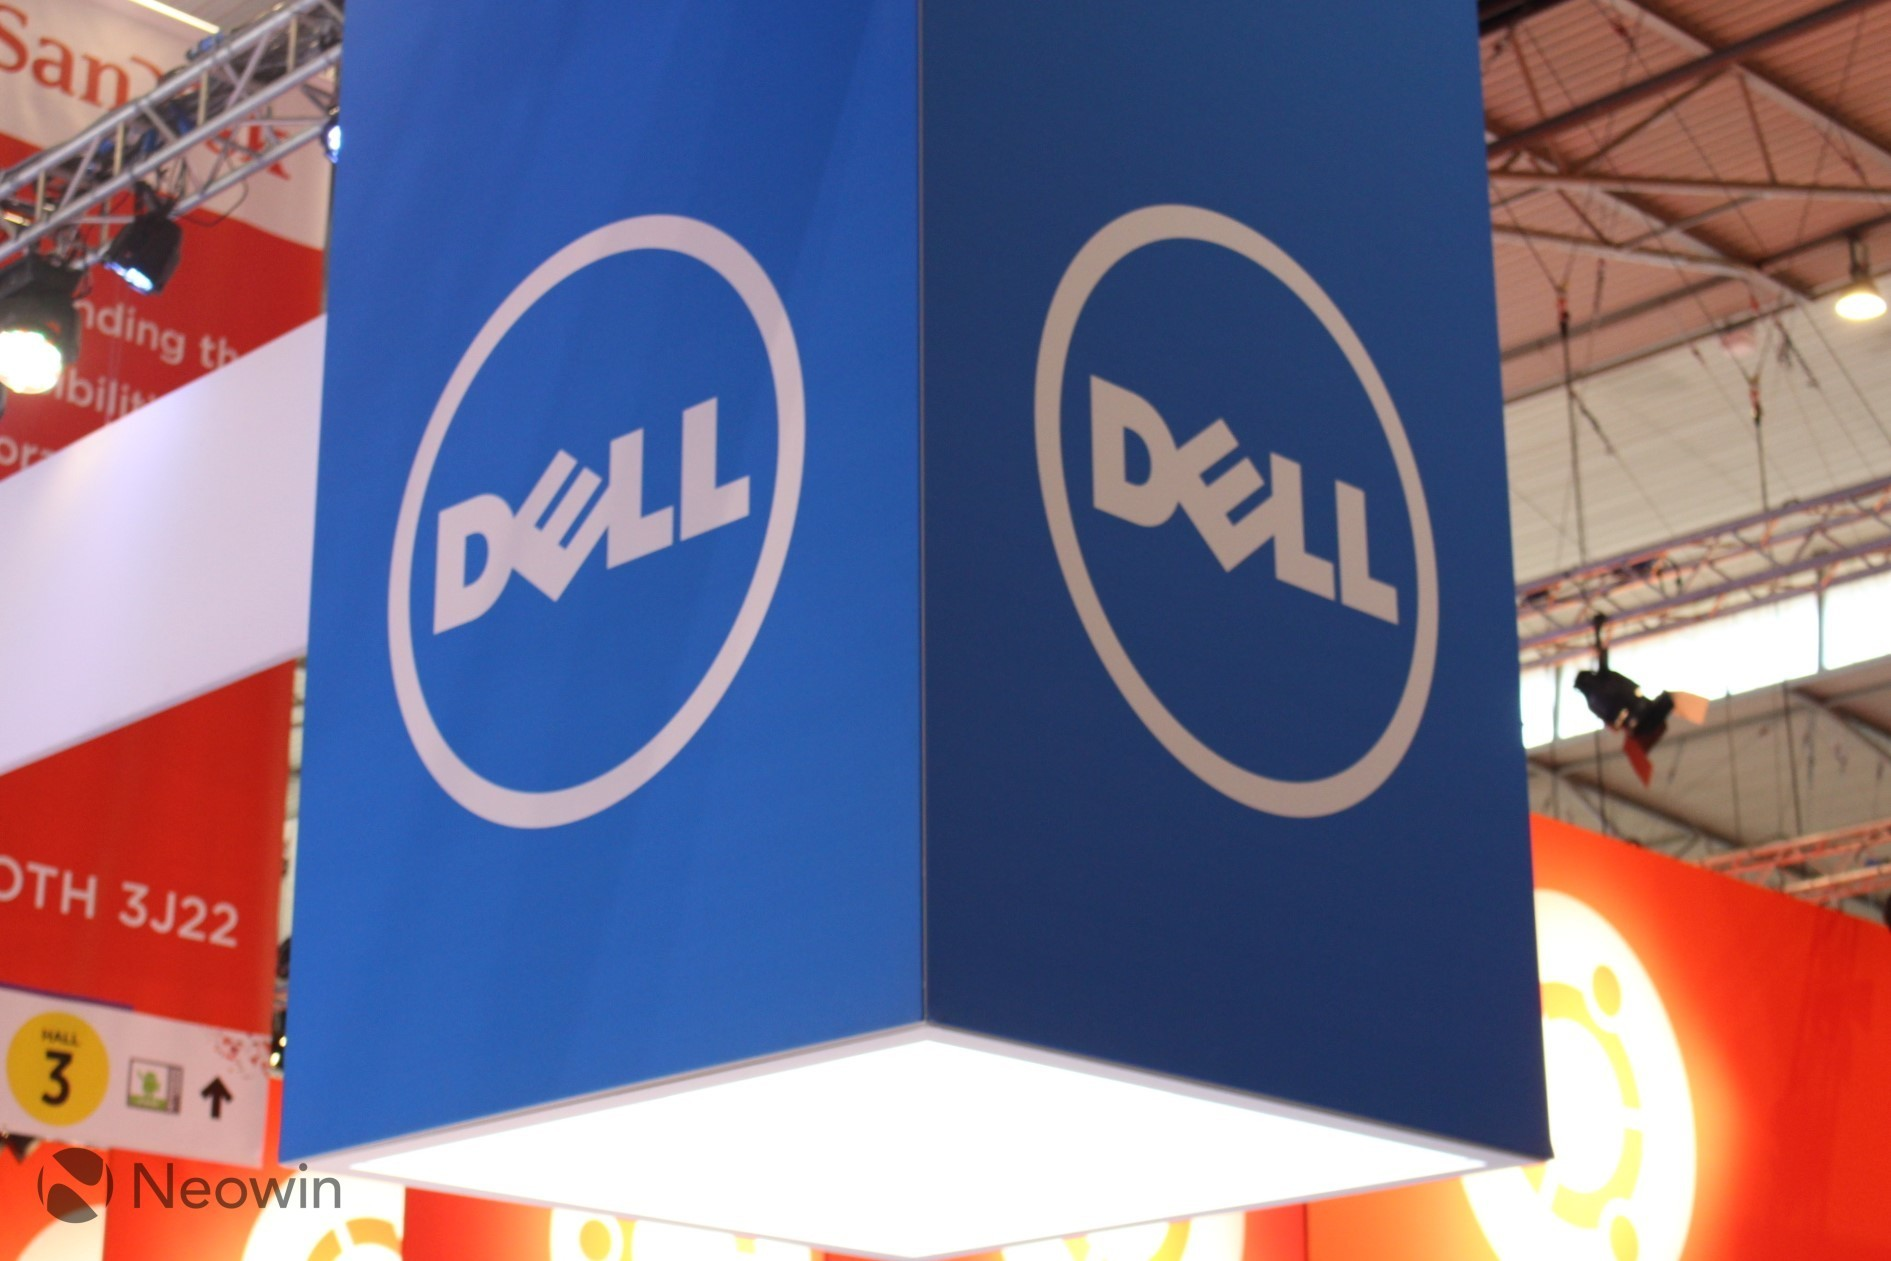 Dell releases a range of updates for its Wyse suite of thin